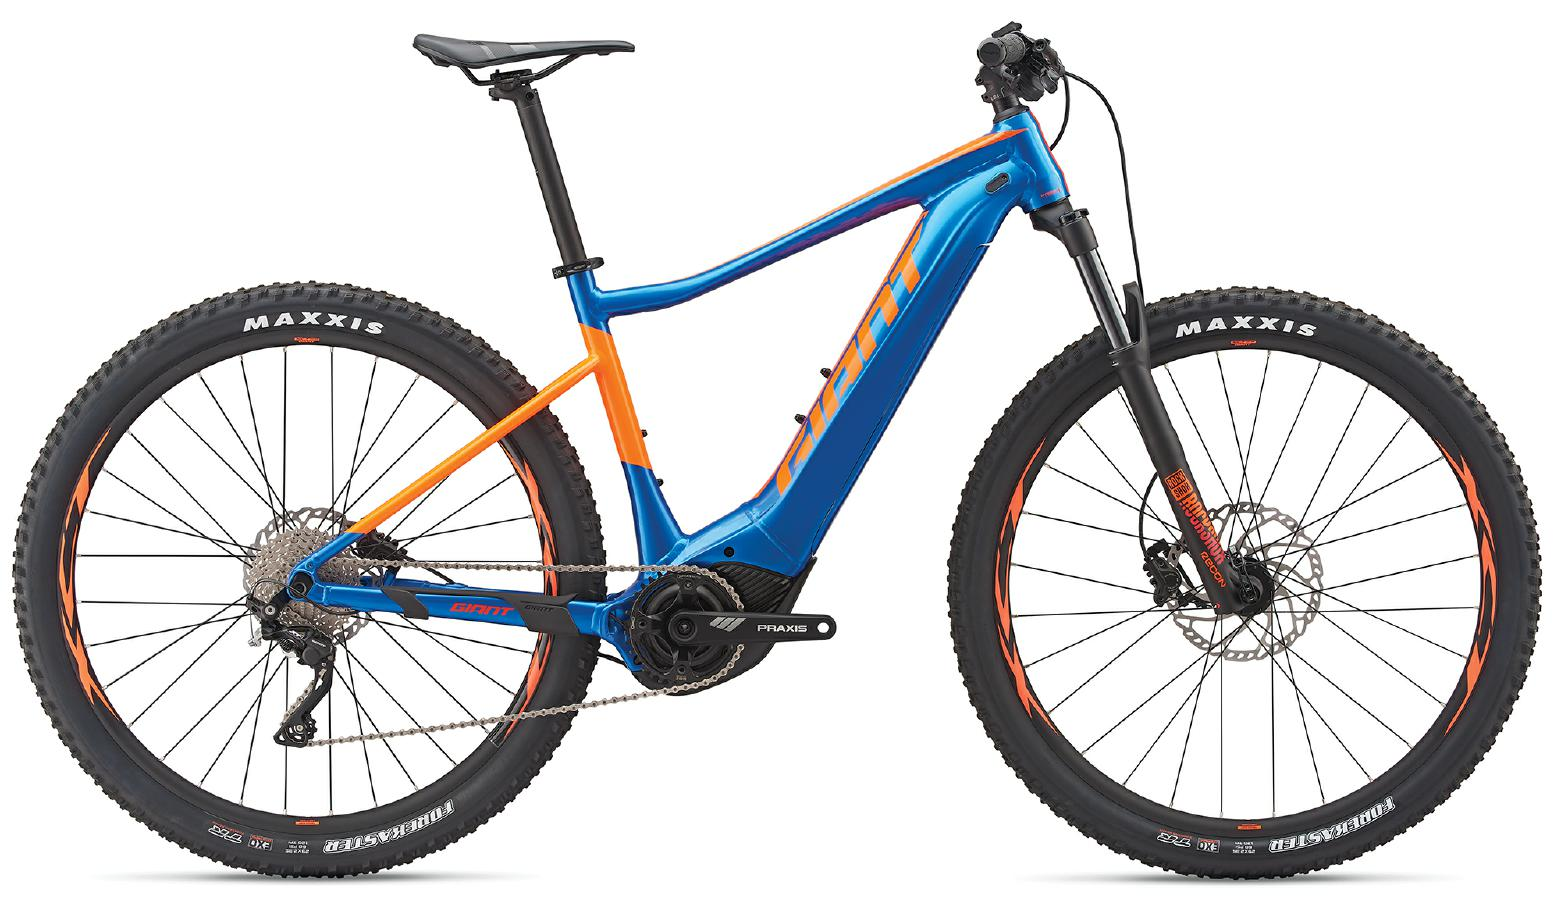 Giant Fathom E+ - blau - e-Mountainbike - 2019